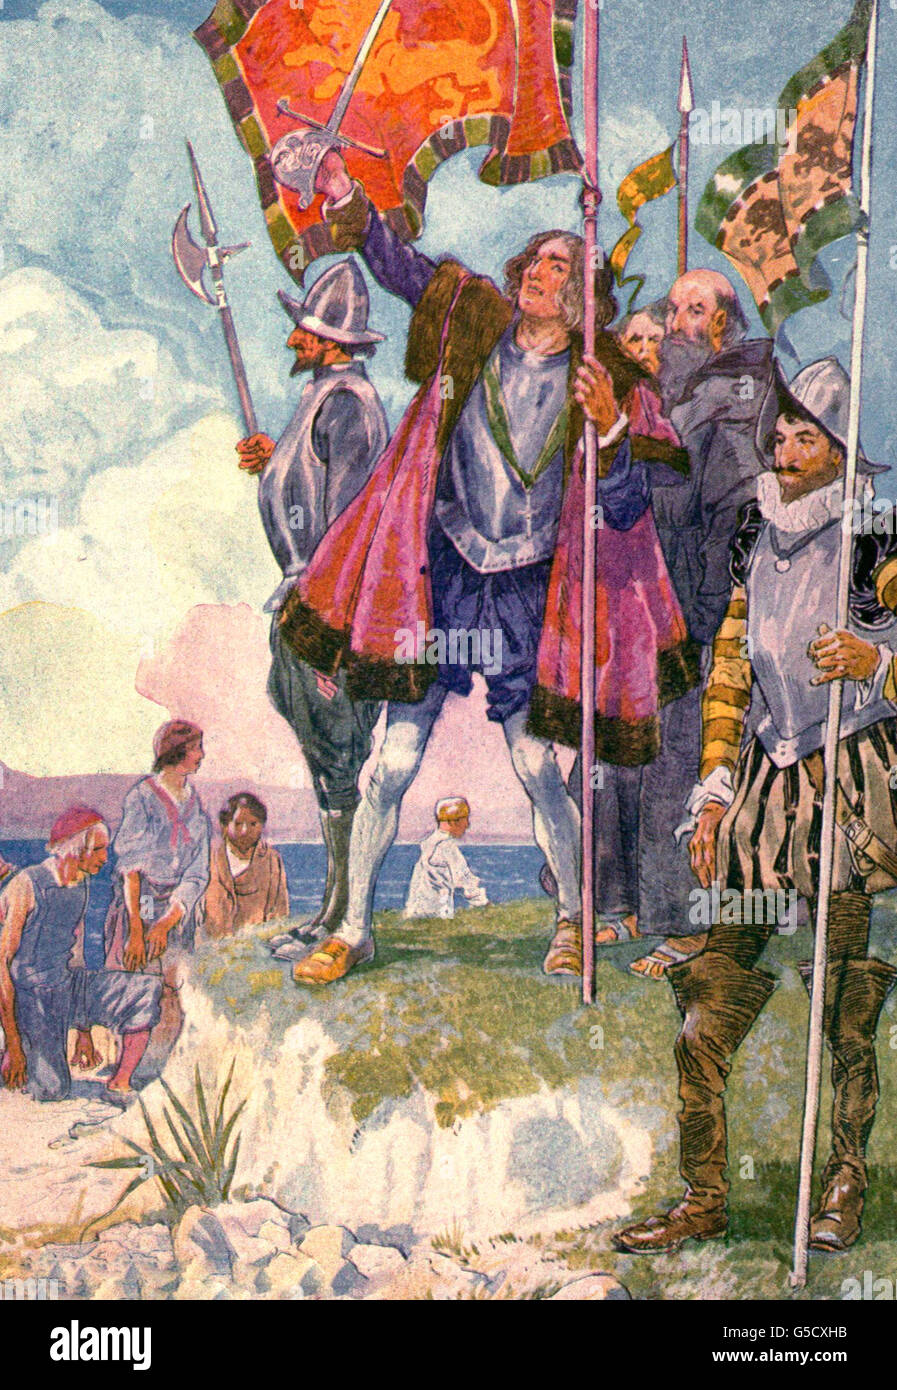 Christopher Columbus shaking the Red and Gold Flag of Spain and taking possession of the island - Stock Image